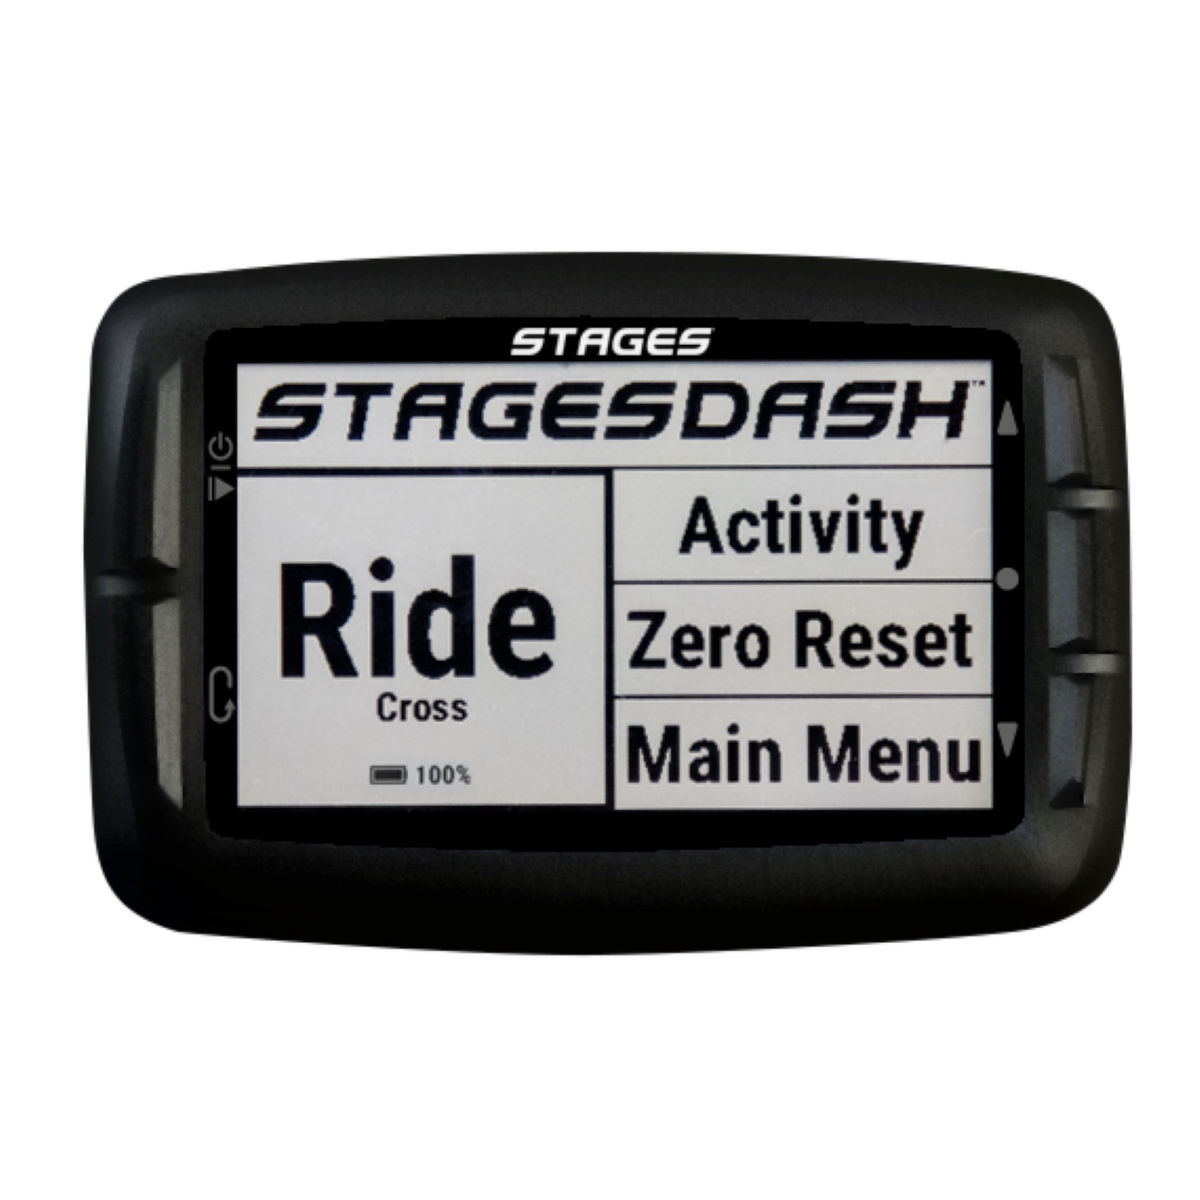 Stages cycling dash gps cycle computers black 2017 sta9410001